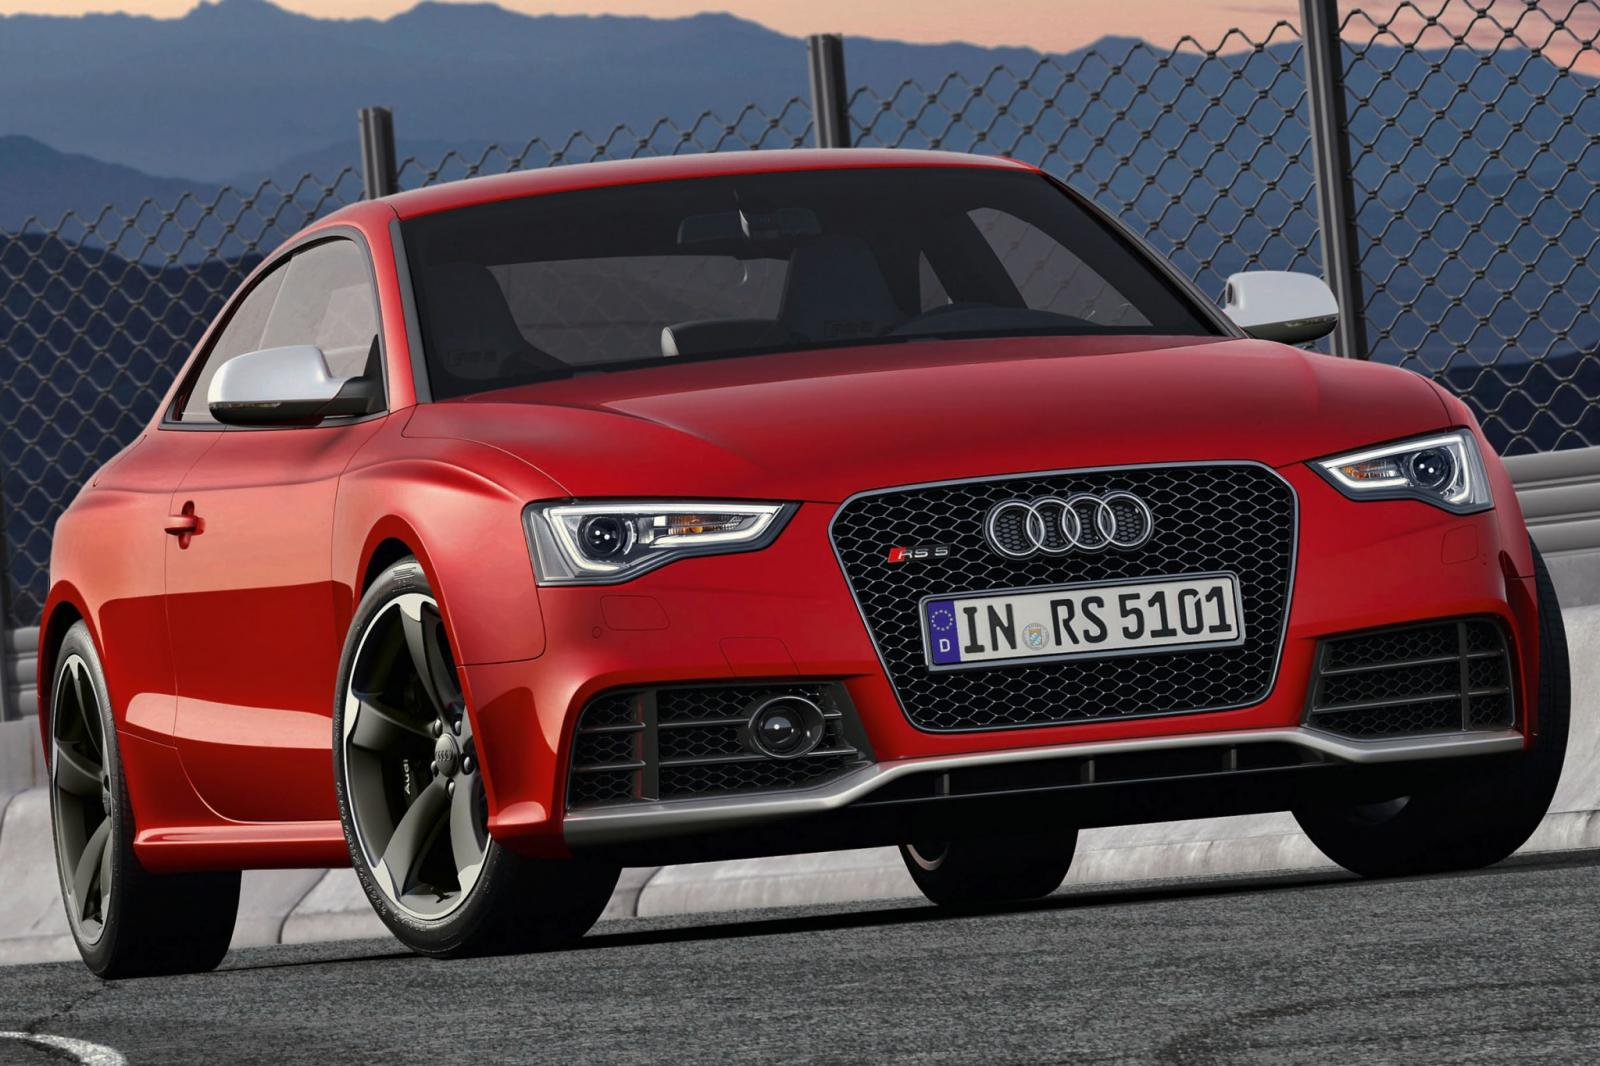 2013 audi rs 5 information and photos zombiedrive. Black Bedroom Furniture Sets. Home Design Ideas